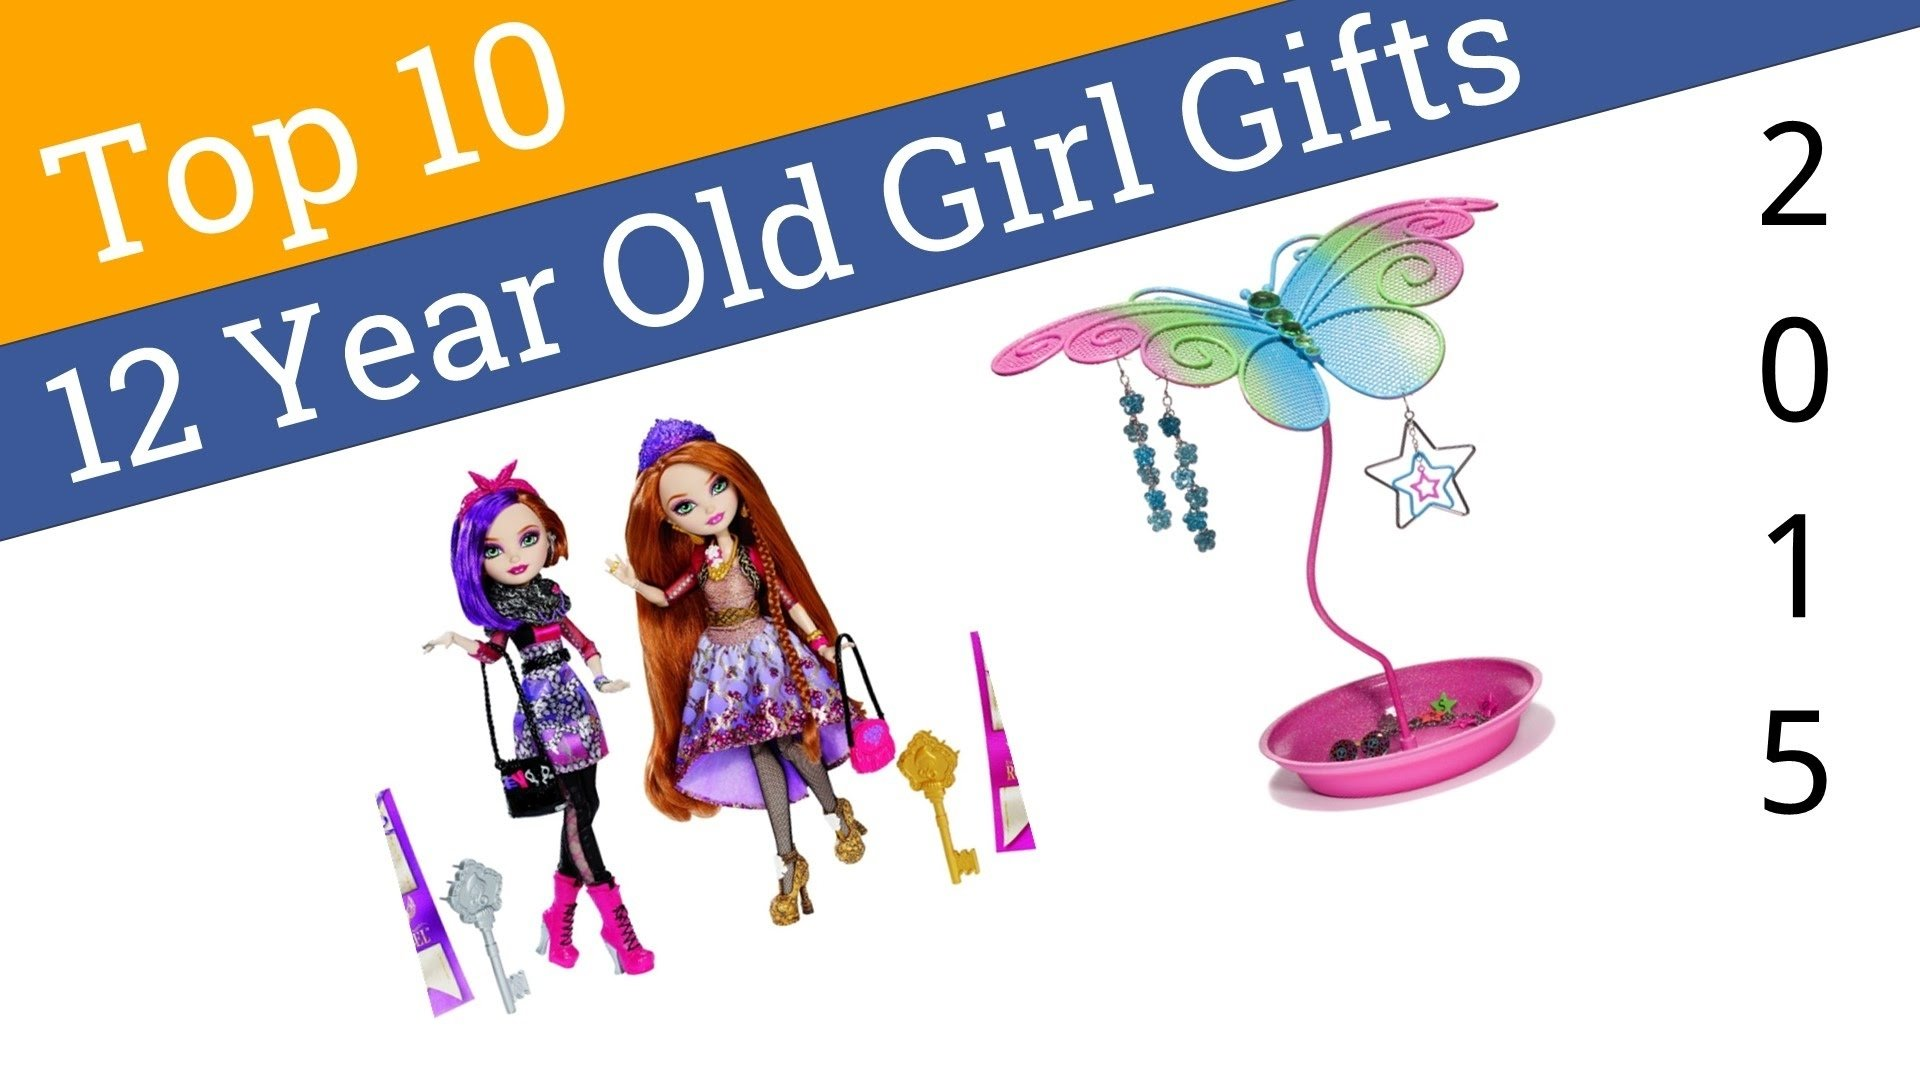 10 Stunning 12 Year Old Girl Gift Ideas 10 best 12 year old girl gifts 2015 youtube 1 2021